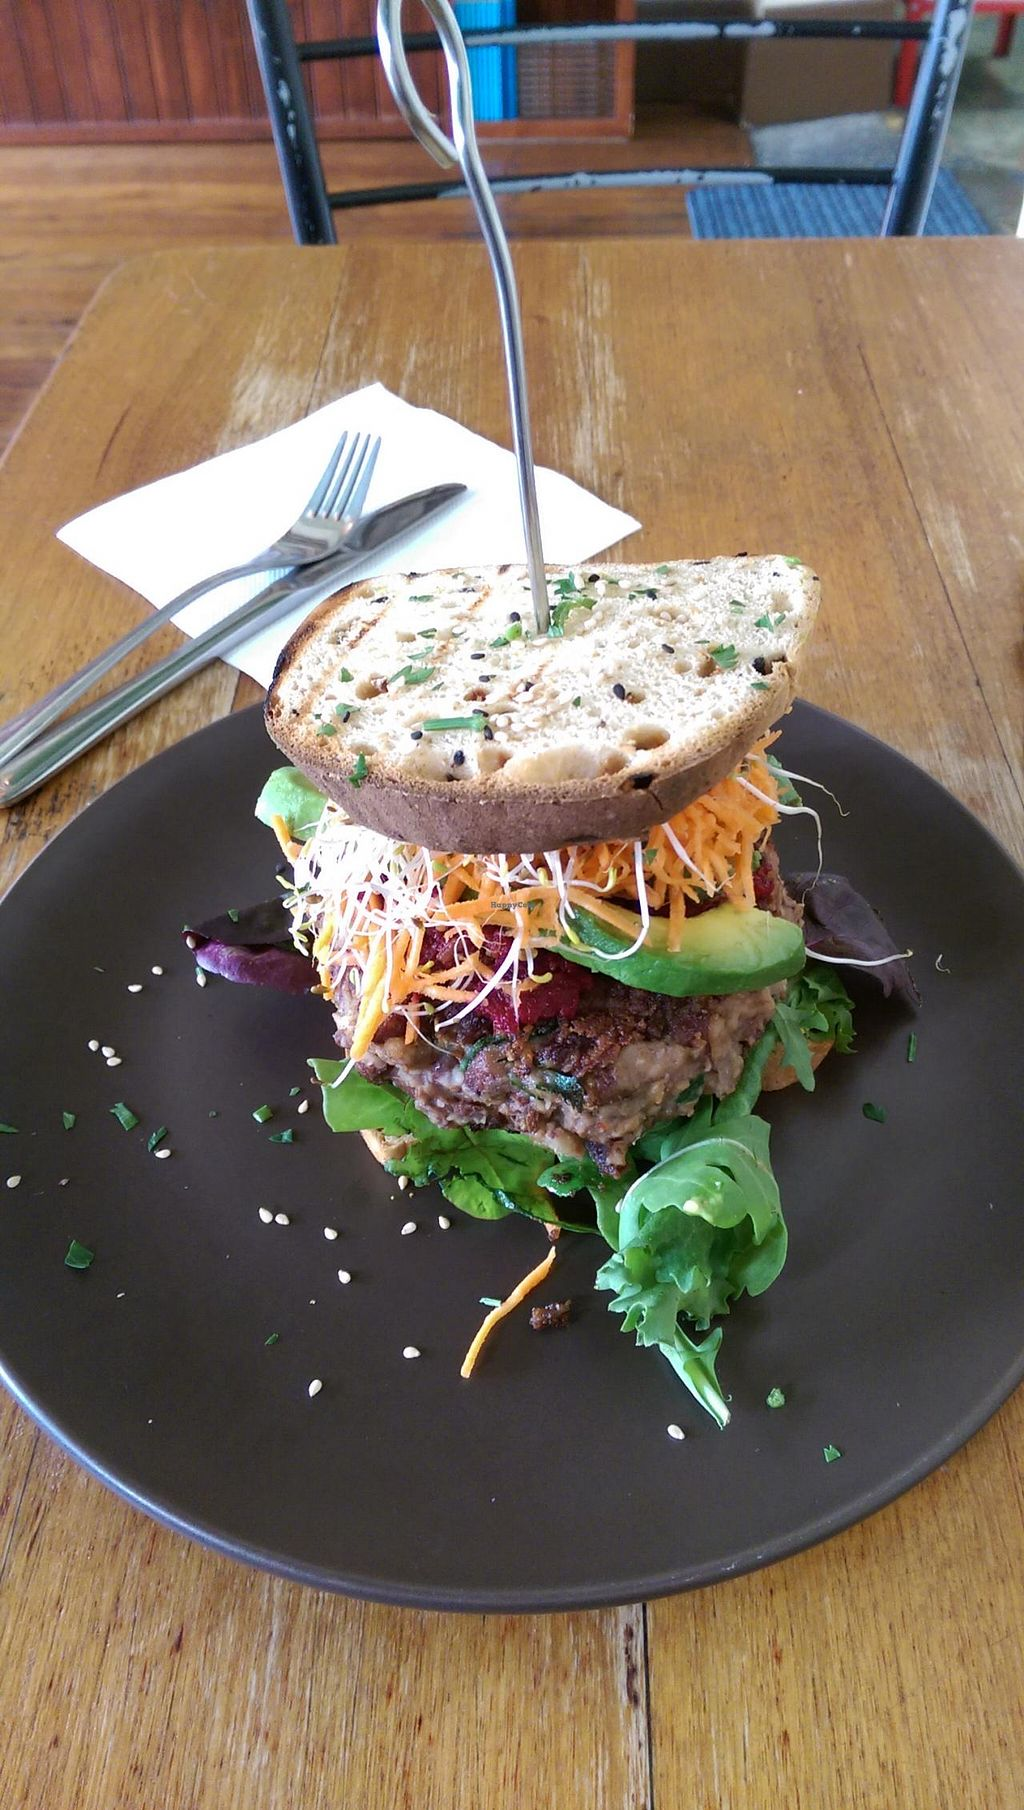 """Photo of CLOSED: Bliss Organic Garden Cafe  by <a href=""""/members/profile/big_saz"""">big_saz</a> <br/>The best-selling Bliss burger <br/> March 31, 2015  - <a href='/contact/abuse/image/4516/97441'>Report</a>"""